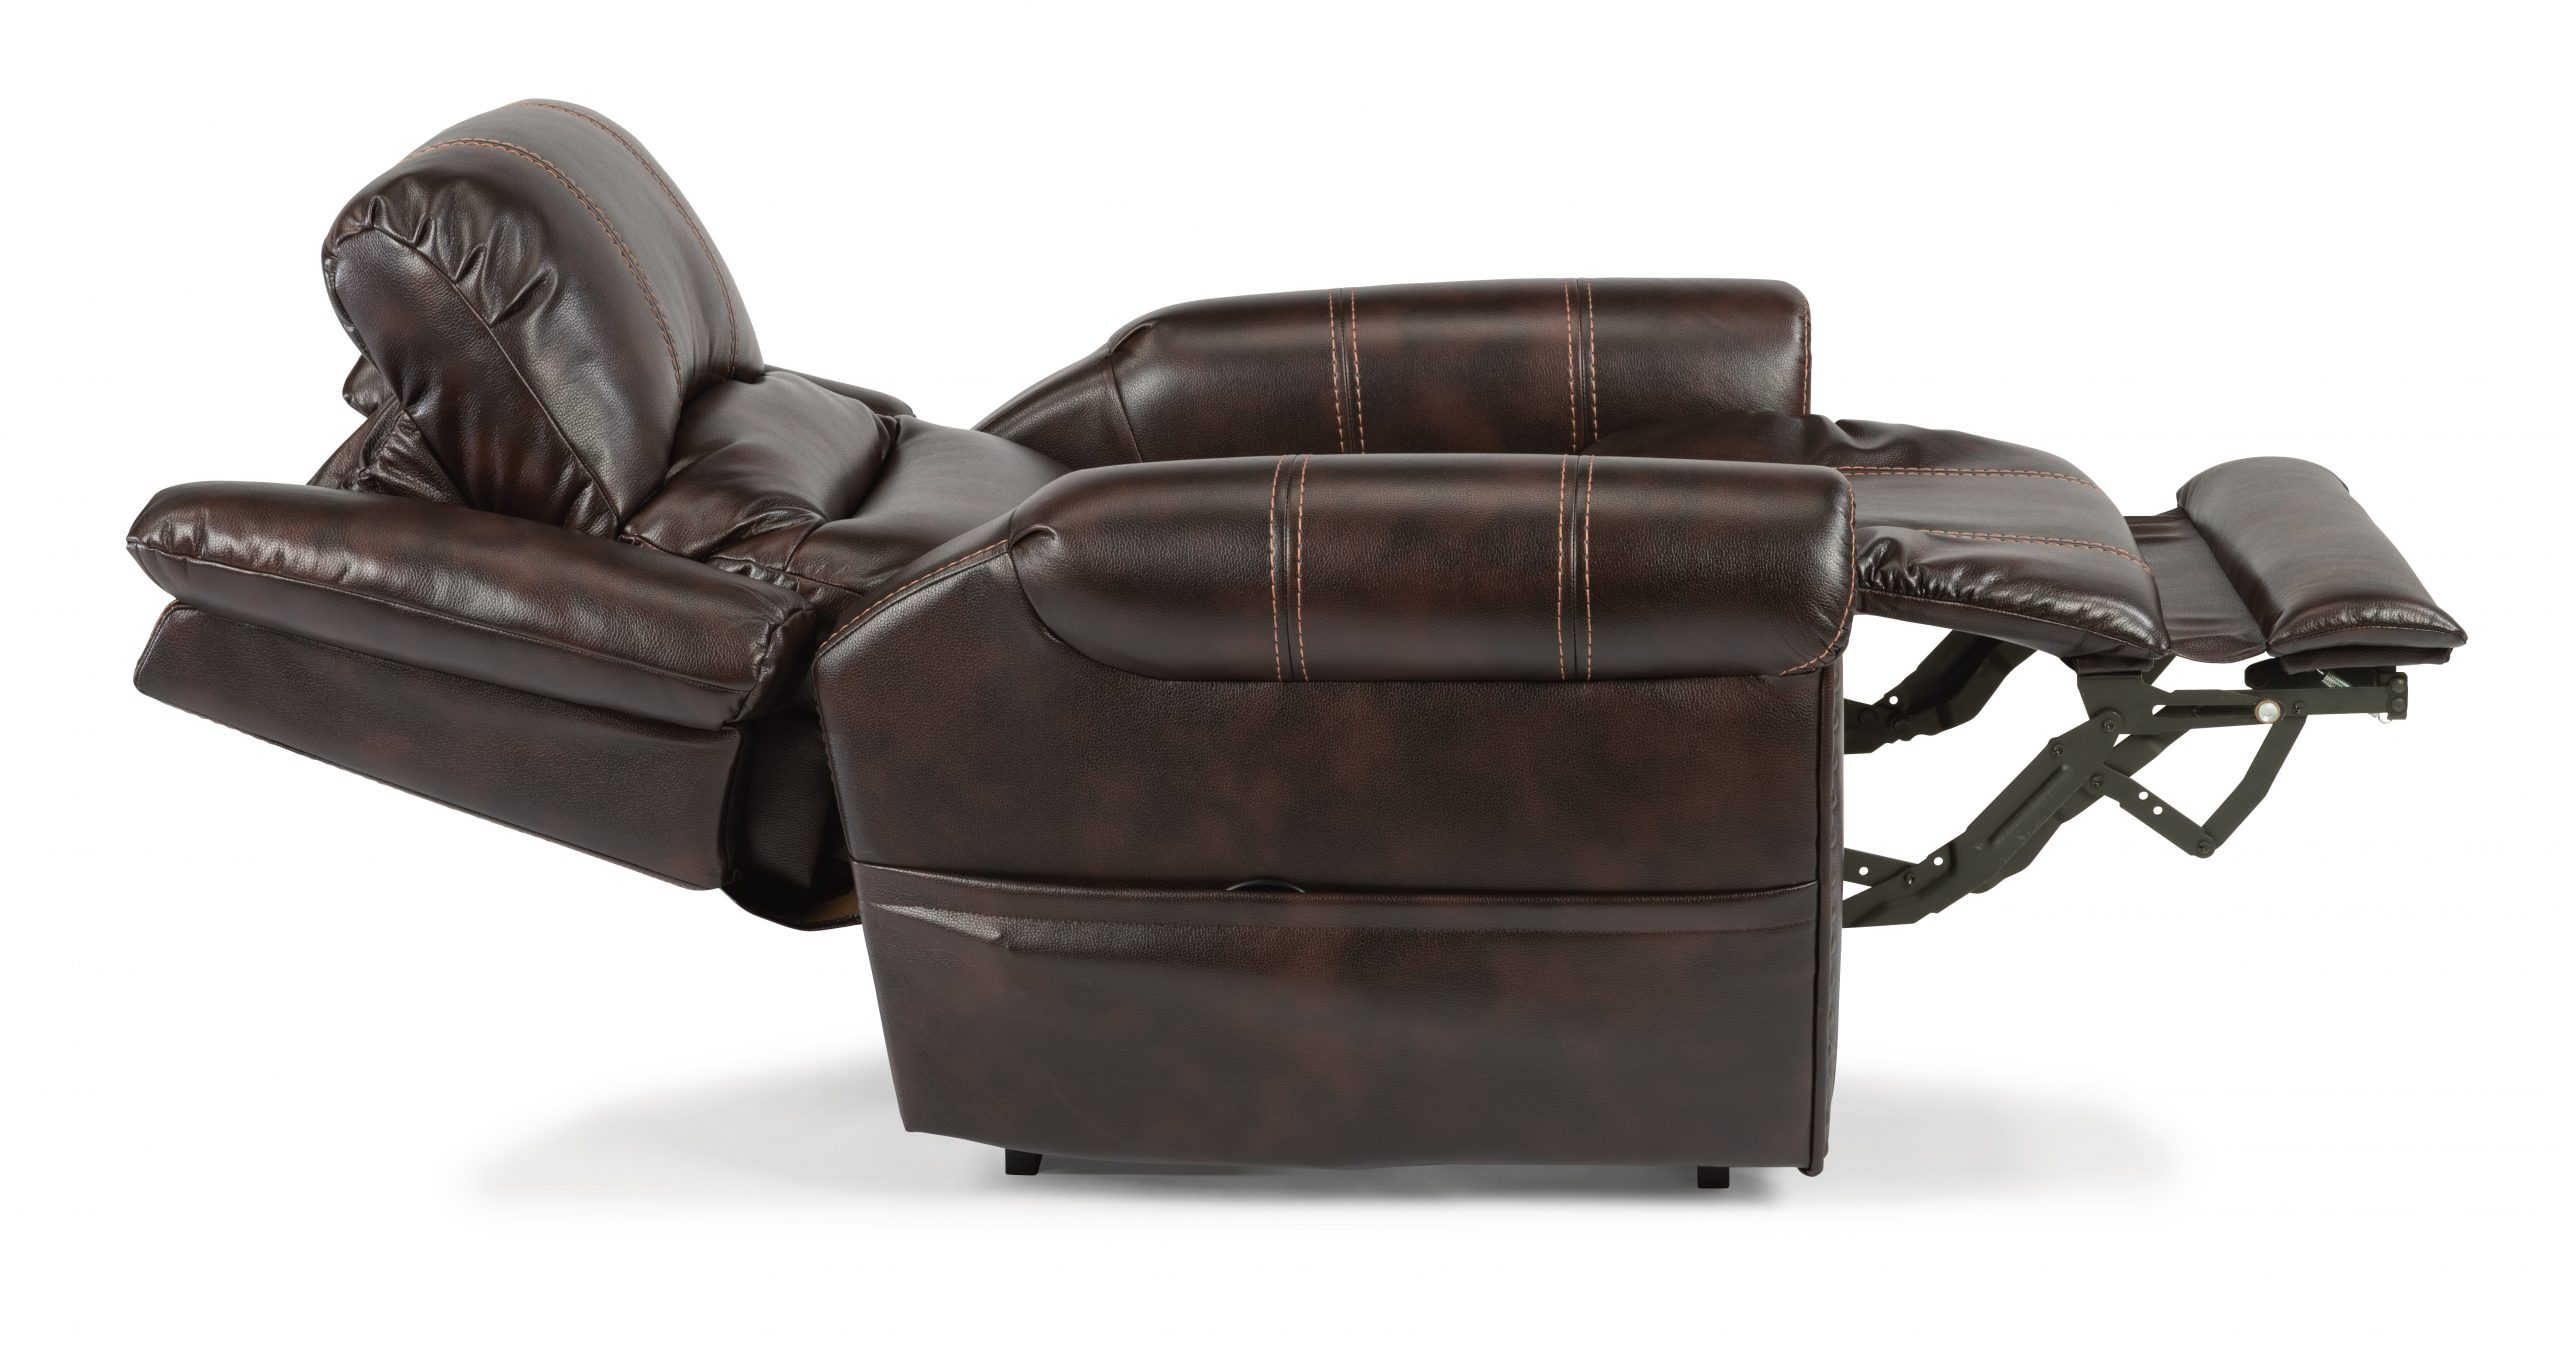 Flexsteel Oscar shown with reclining and headrest (Lift Recliner)